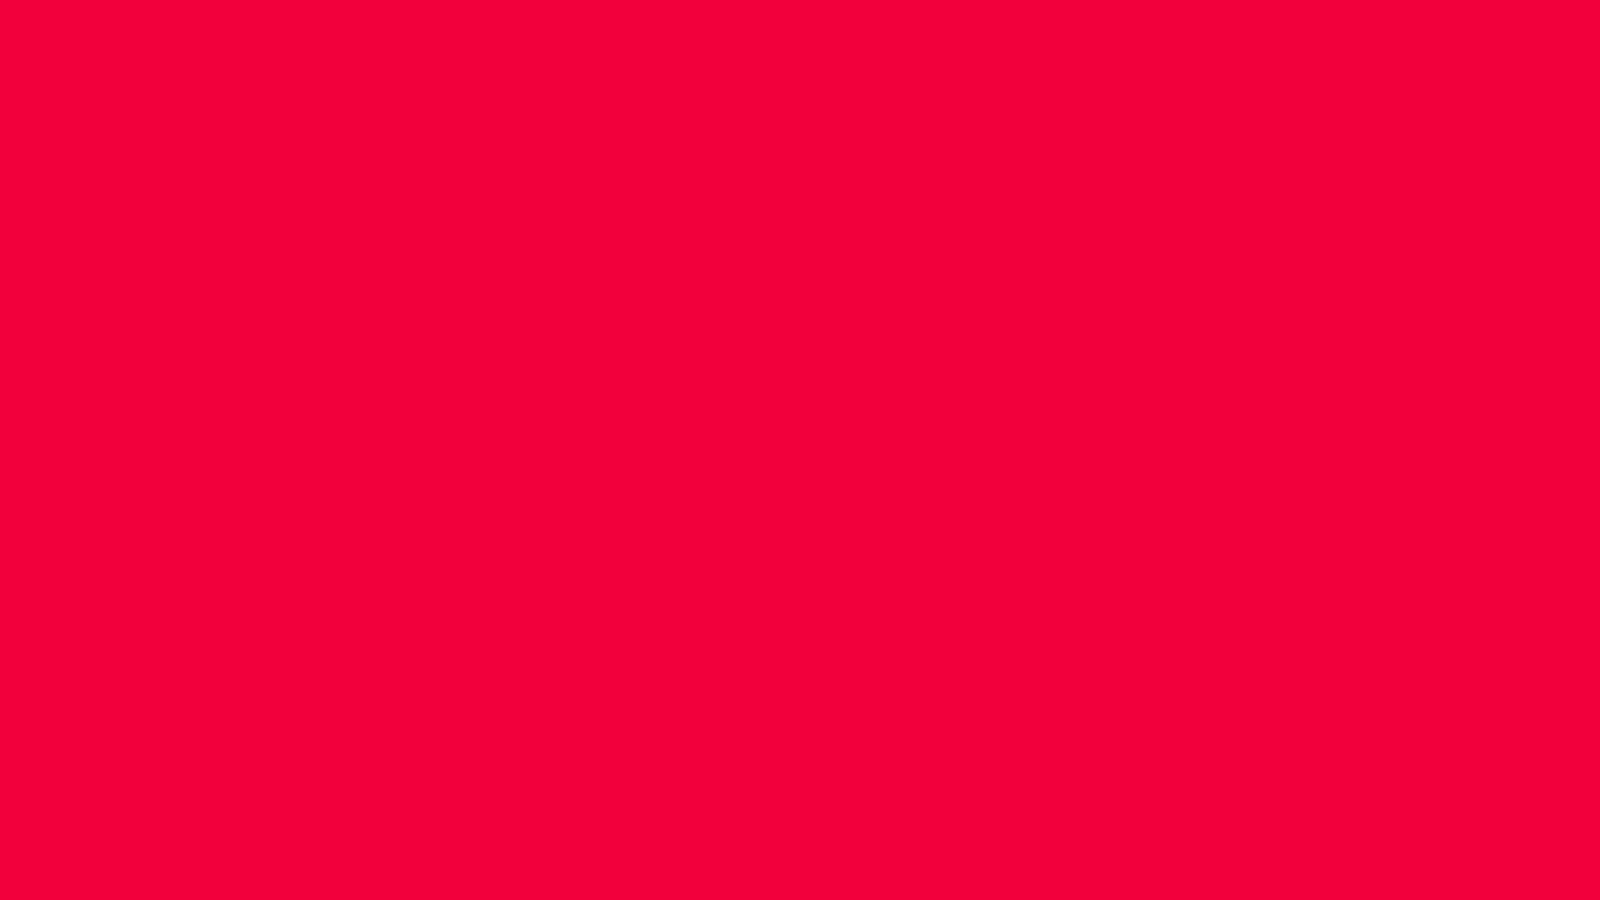 1600x900 Red Munsell Solid Color Background